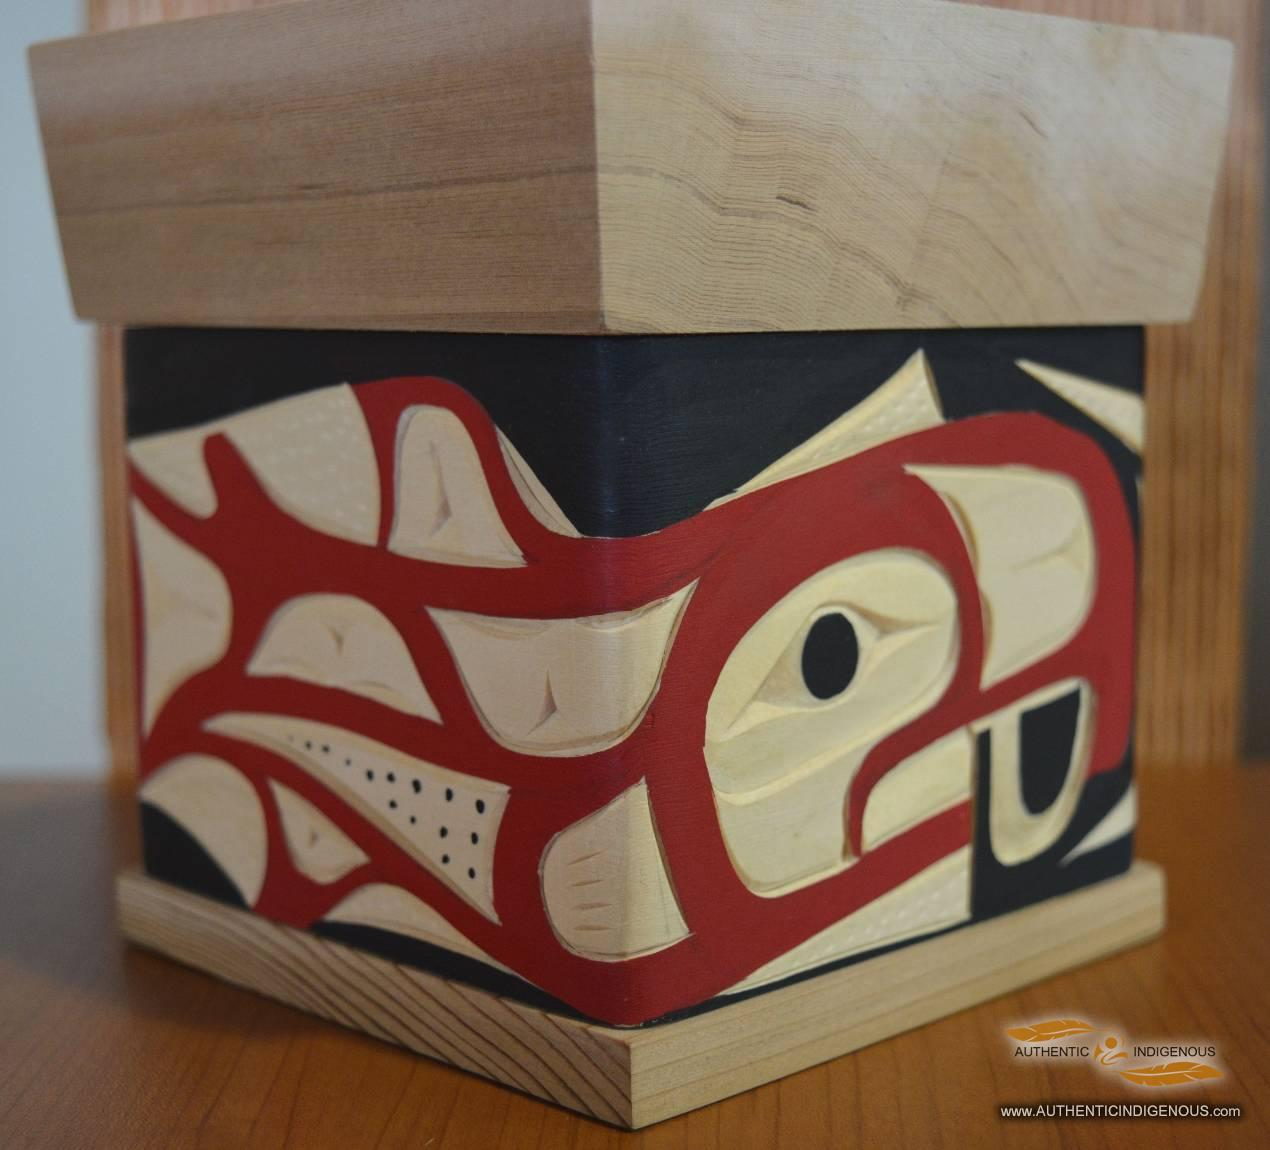 Bentwood Box | Authentic Indigenous Artworks